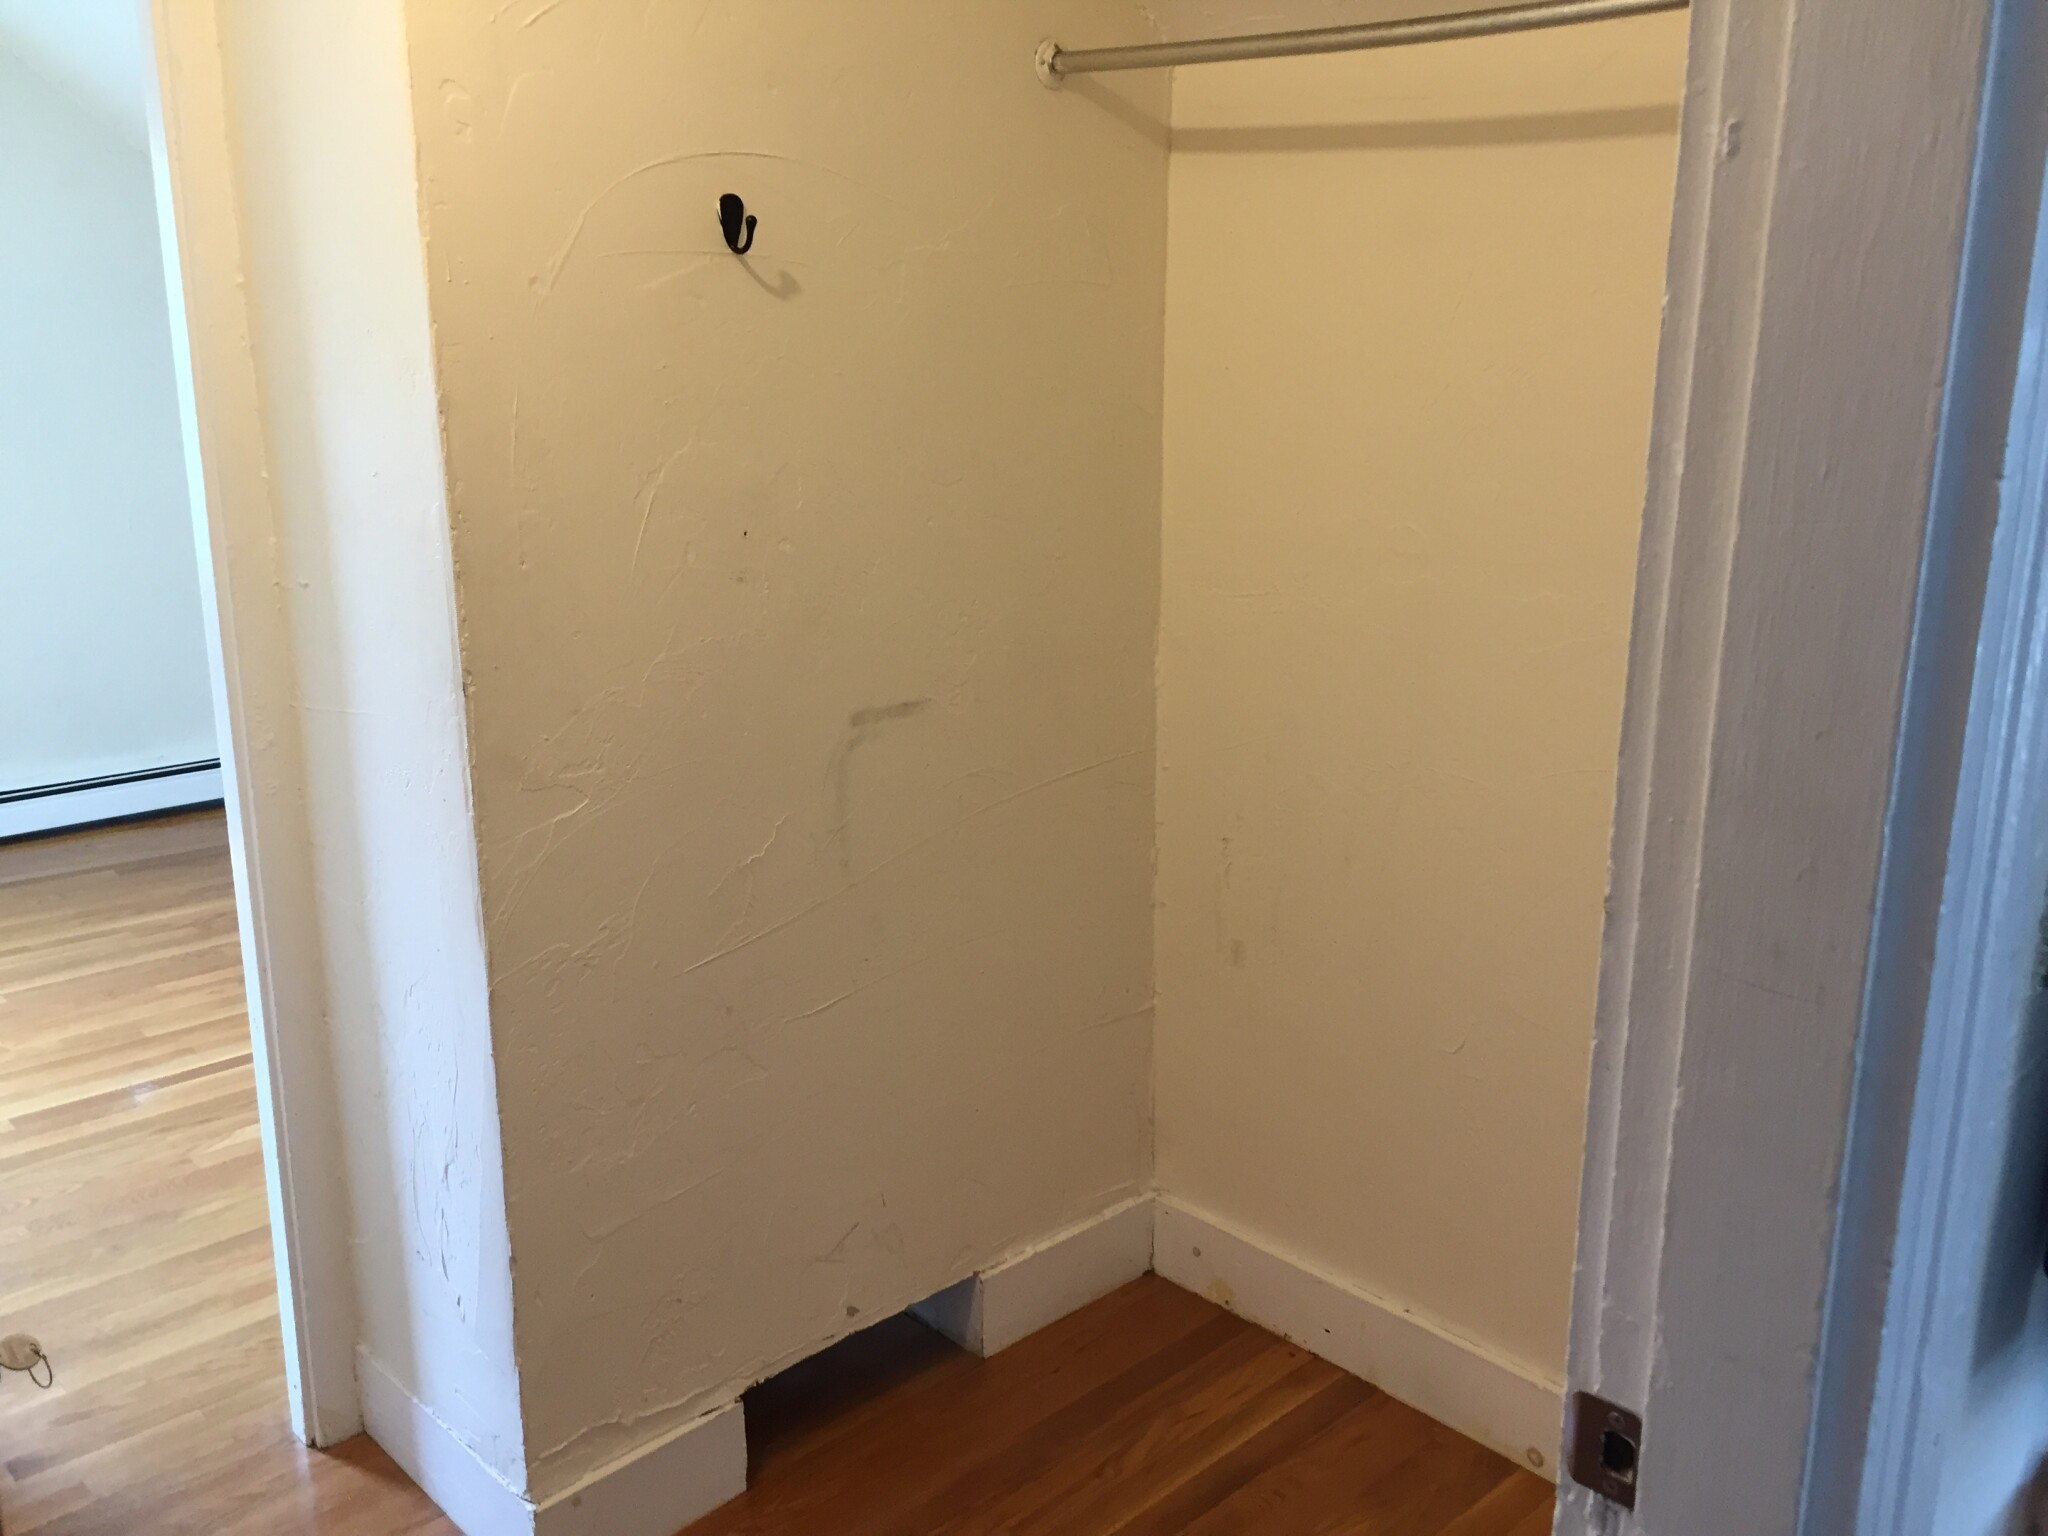 2 Beds, 1 Bath apartment in Somerville for $2,200